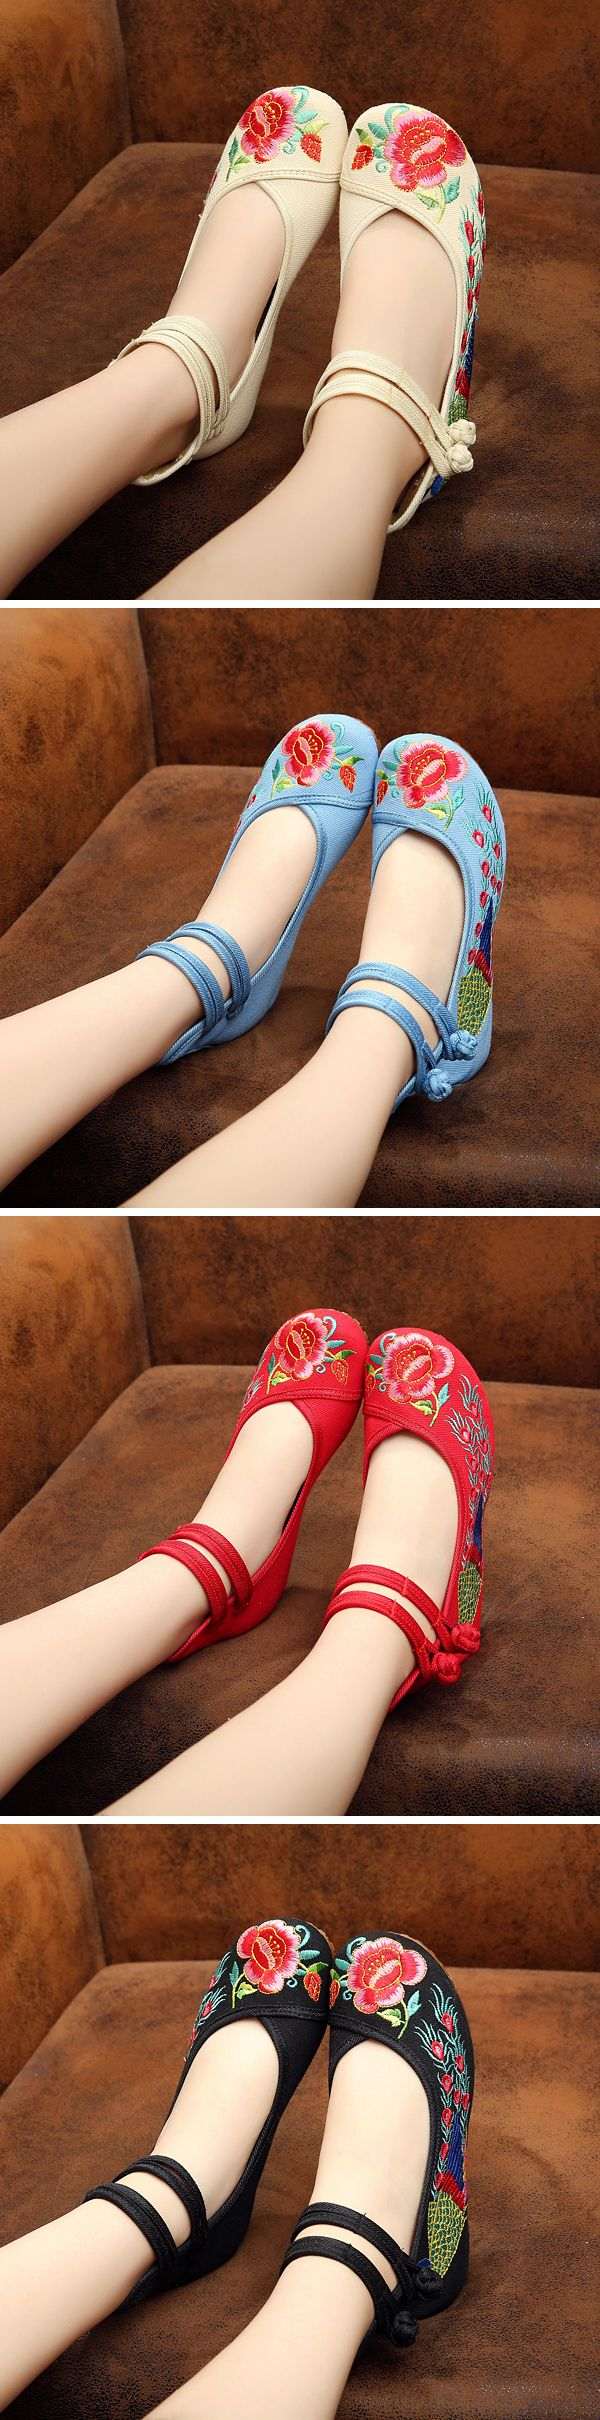 US$13.06 Floral Embroidery National Wind Chinese Knot Lace Up Wedge Heel Shoes